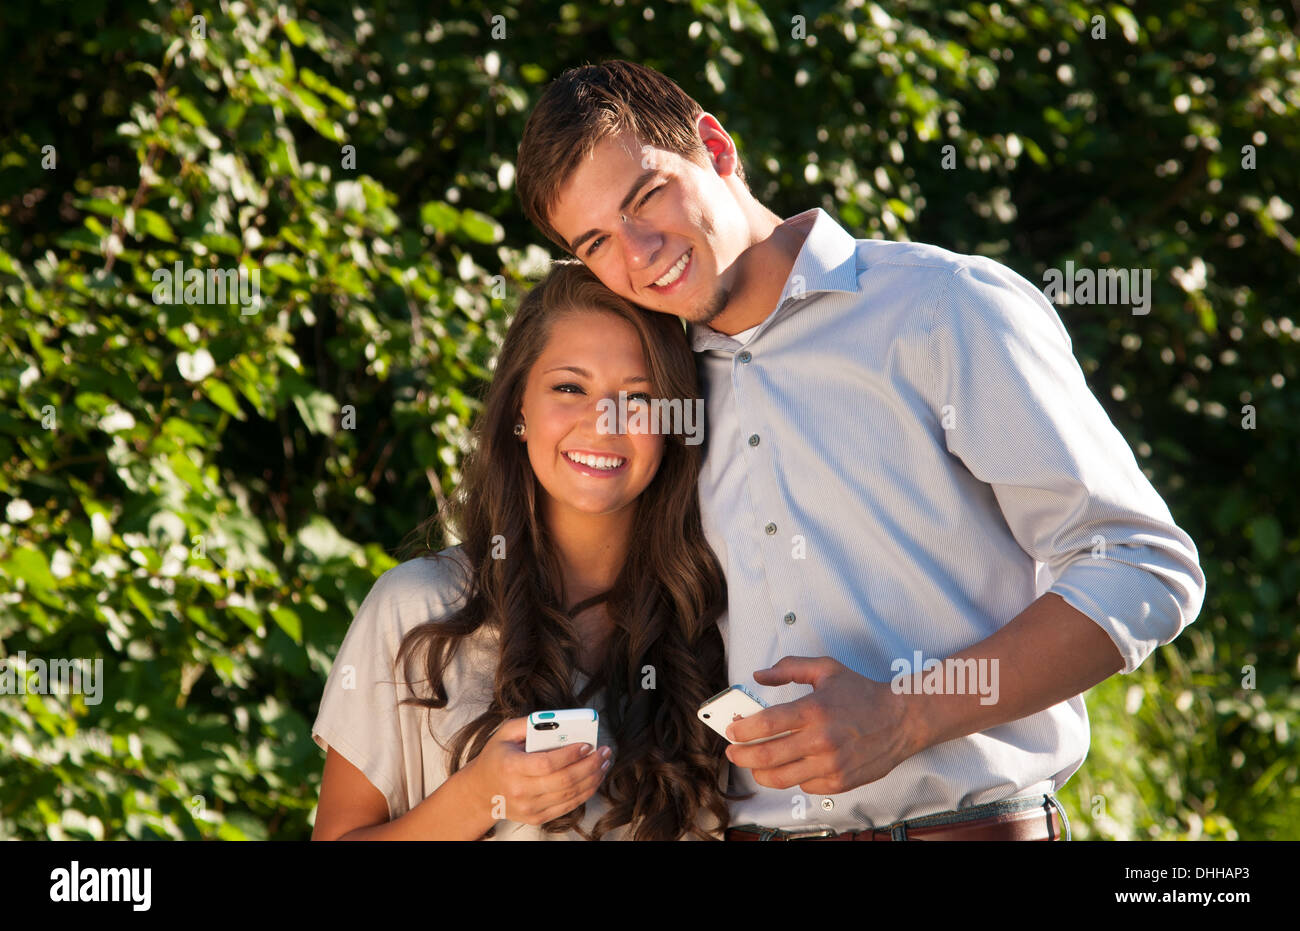 Girl and boy dating pic